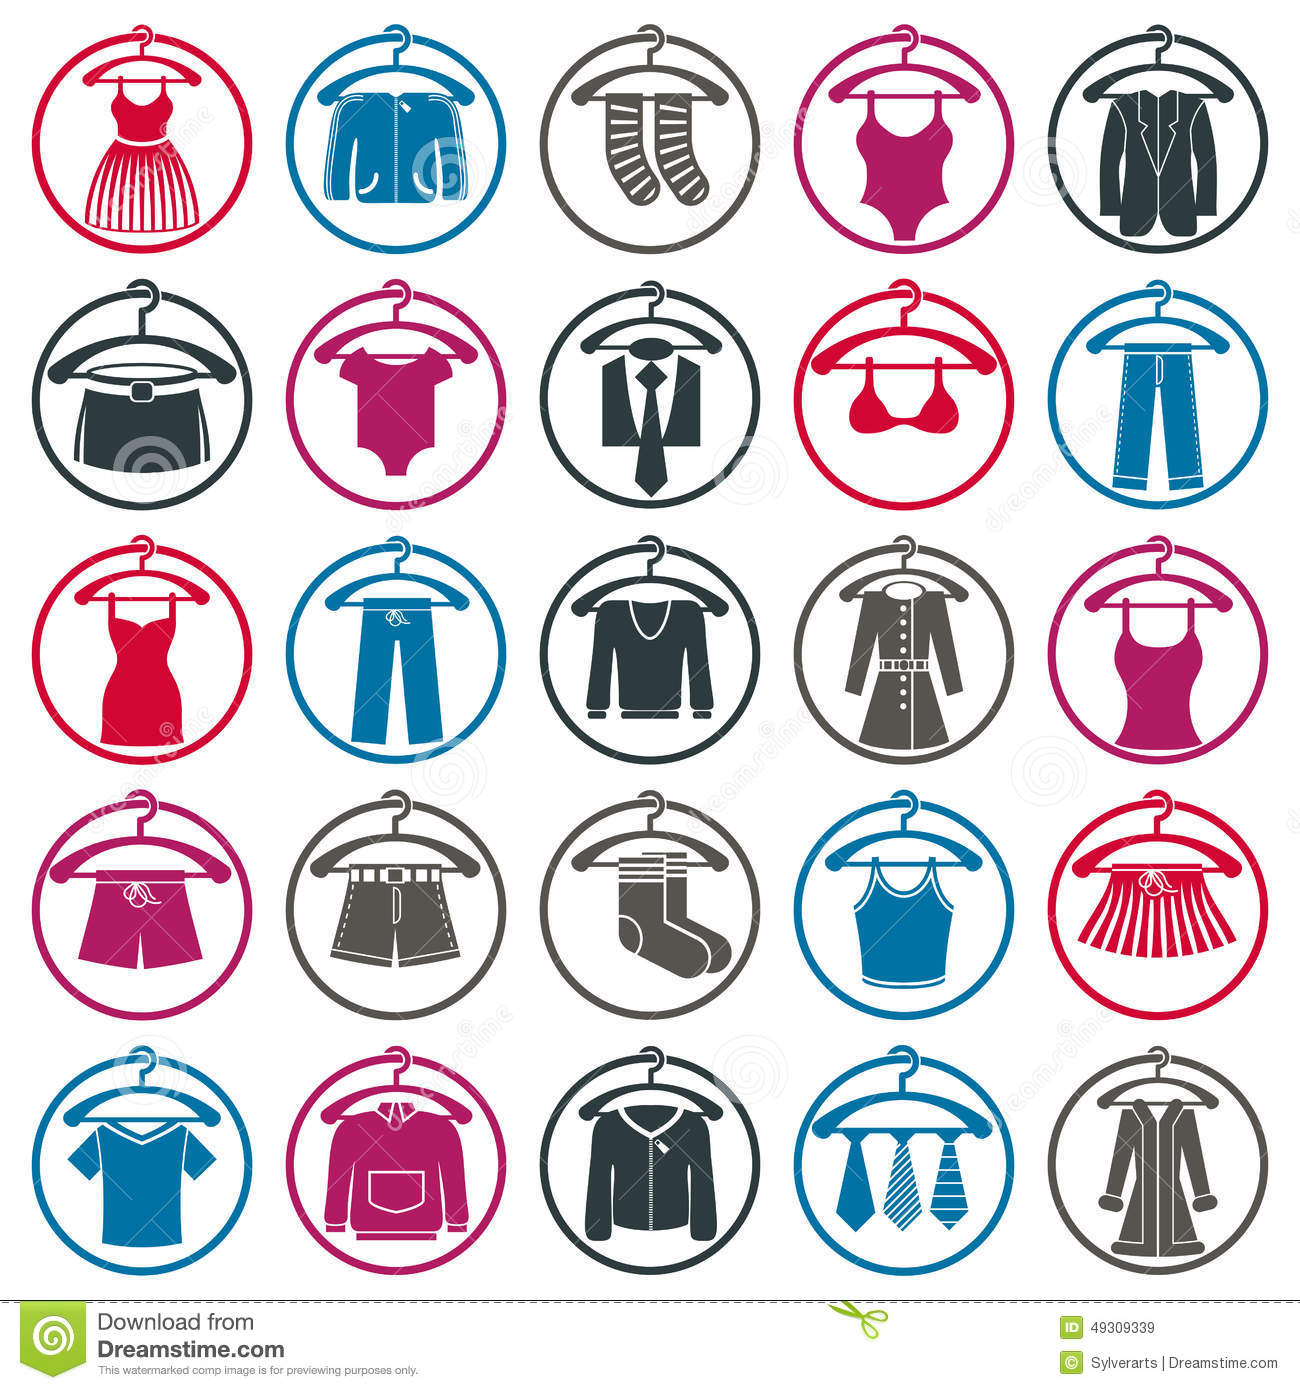 Clothing Care Labels and Symbol